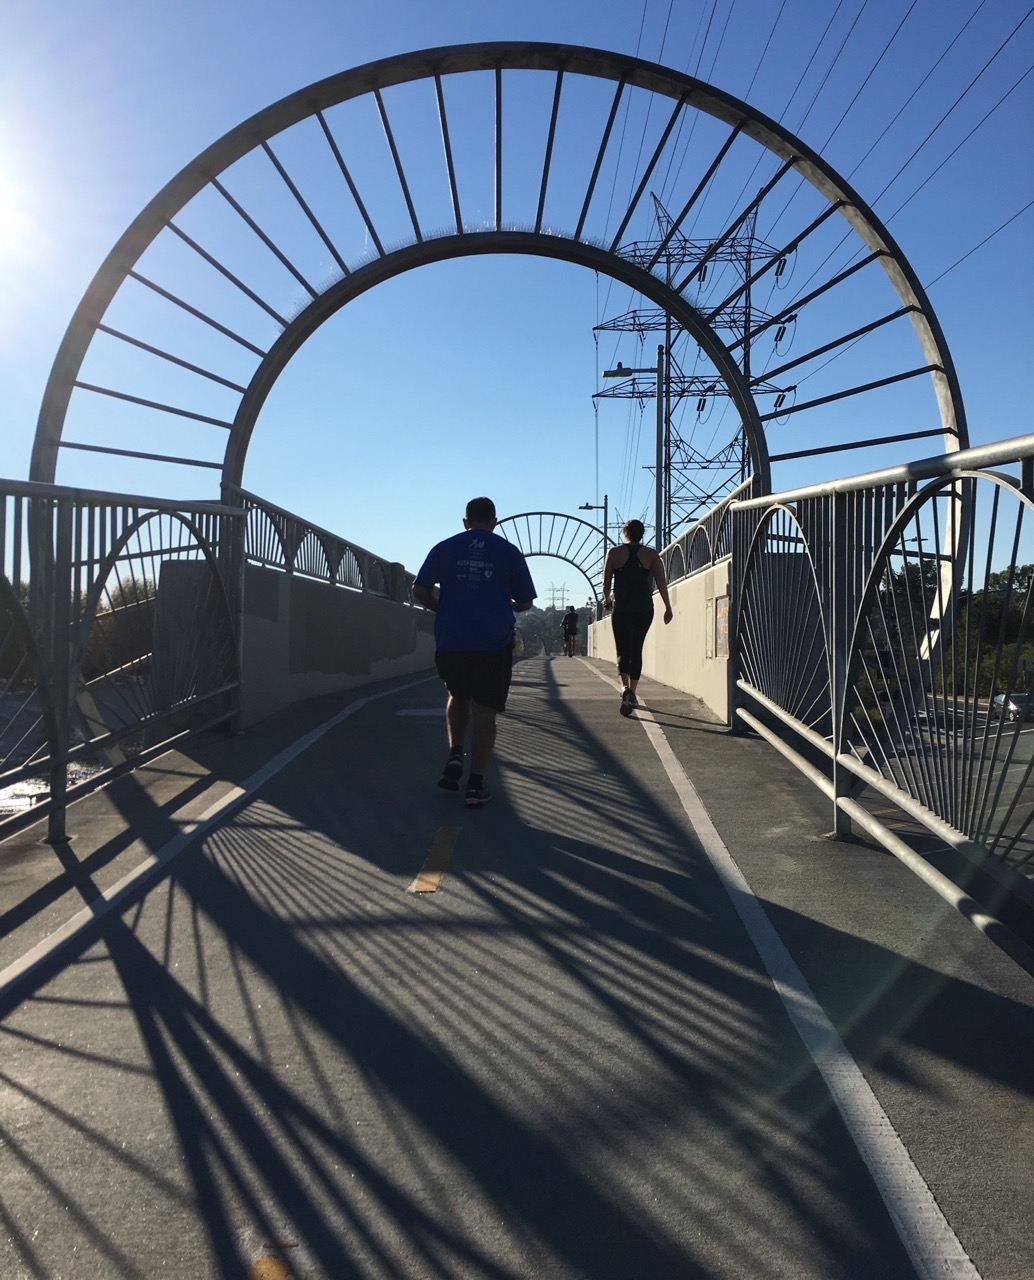 Walking or biking along the LA River is one of the fun things to do in Studio City with Kids